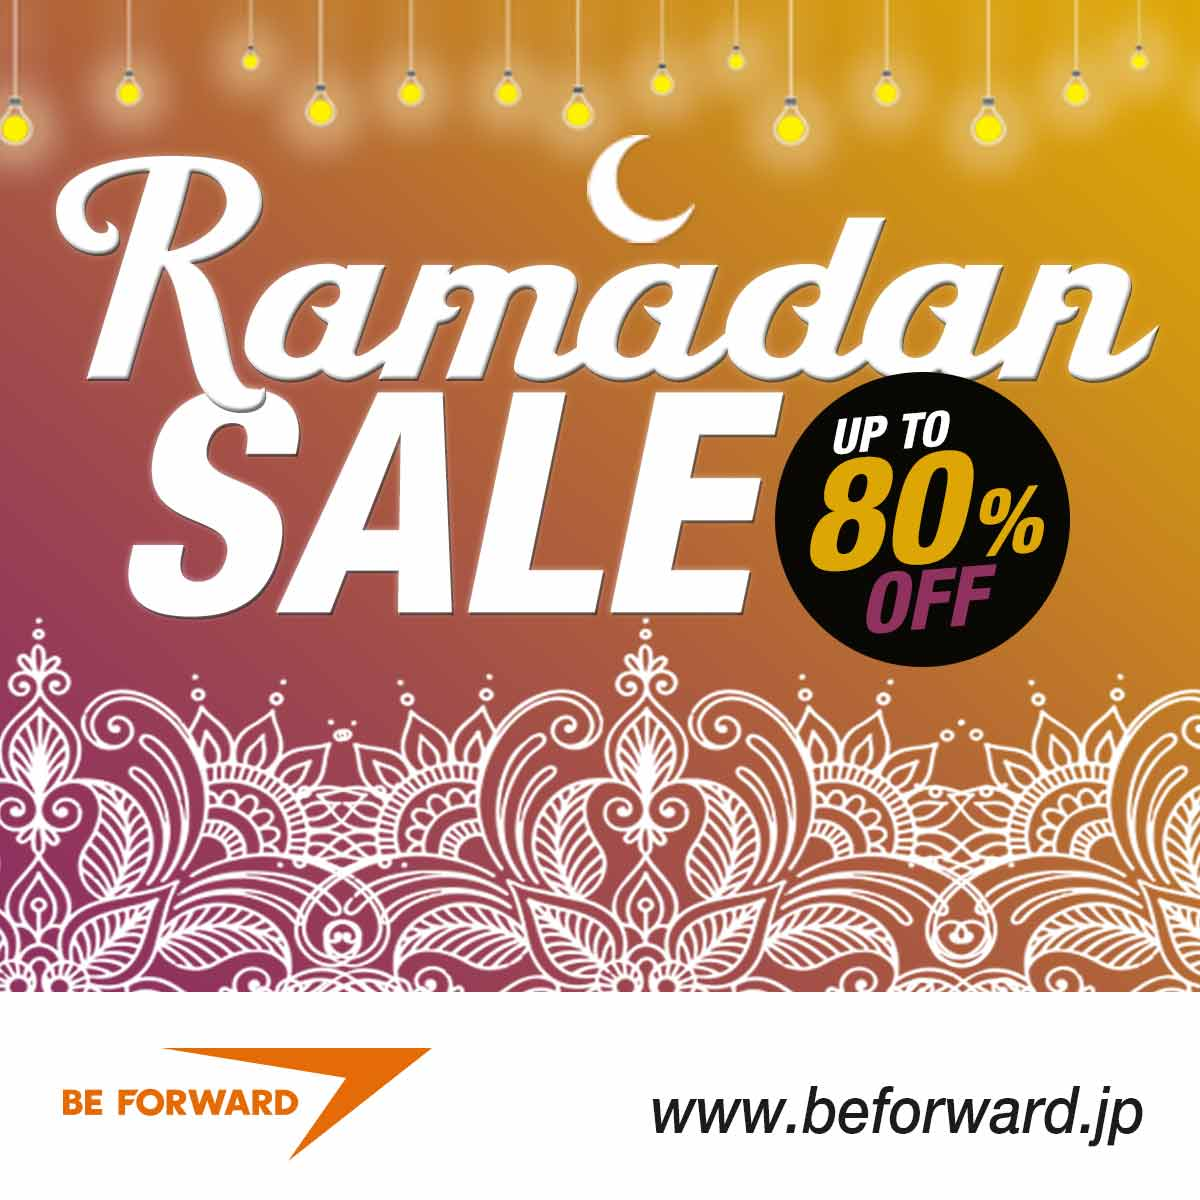 BE FORWARD Ramadan Sale - Save Up to 80% Off Used Cars